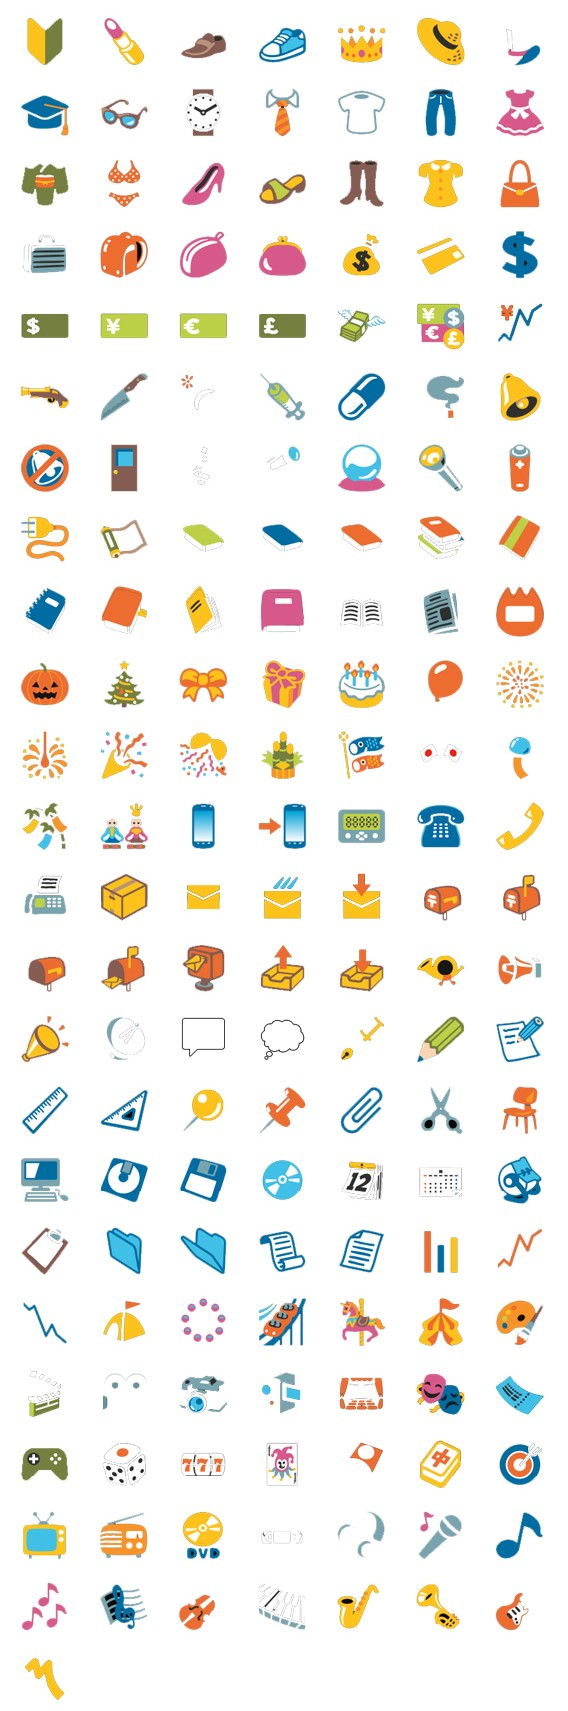 New emoji and emoticons for google hangouts 2 everyday objects events and parties buycottarizona